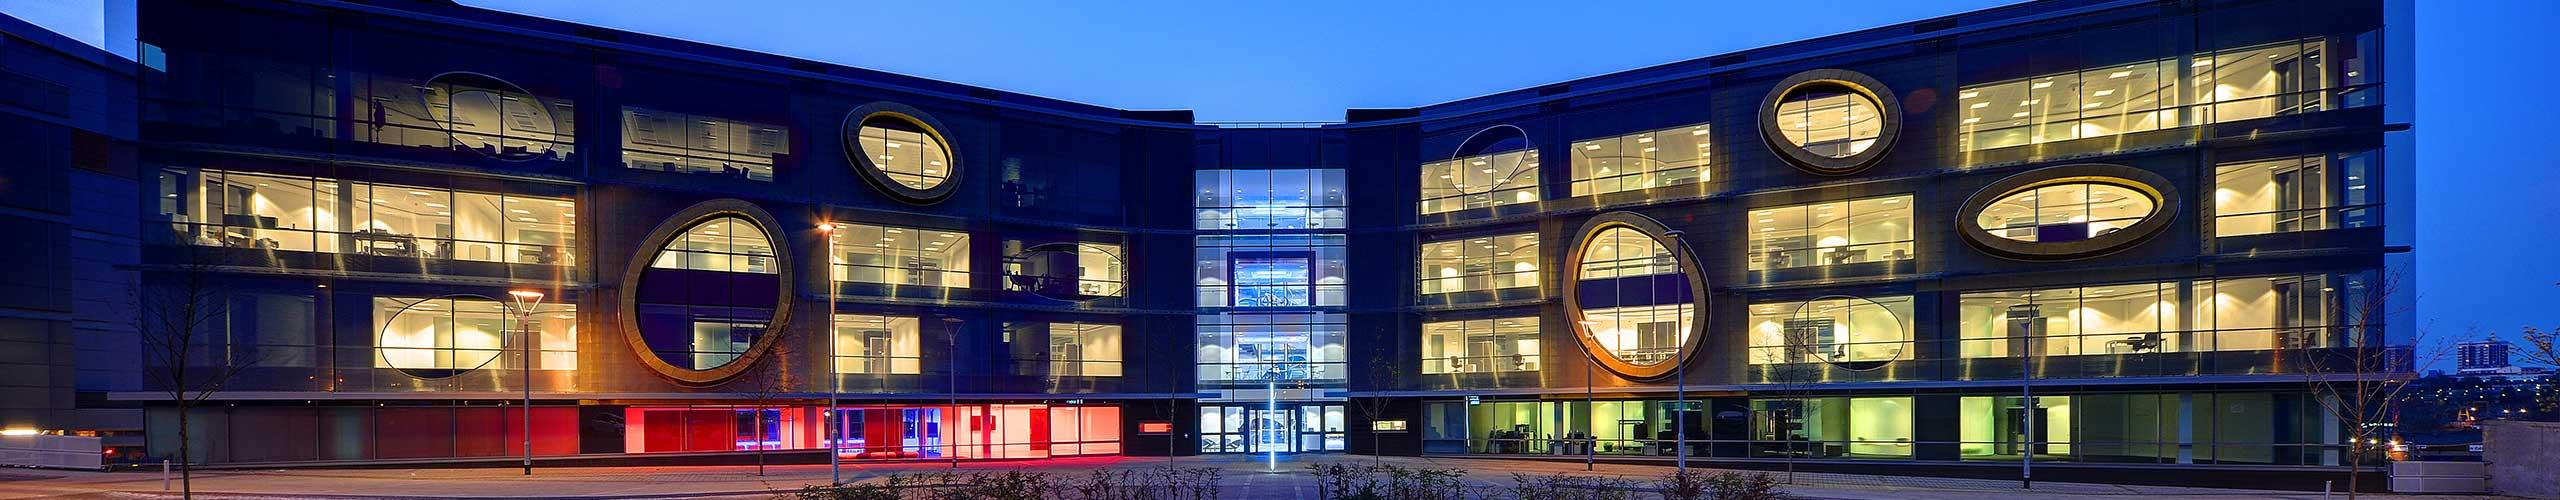 Northern Design Centre front exterior at night